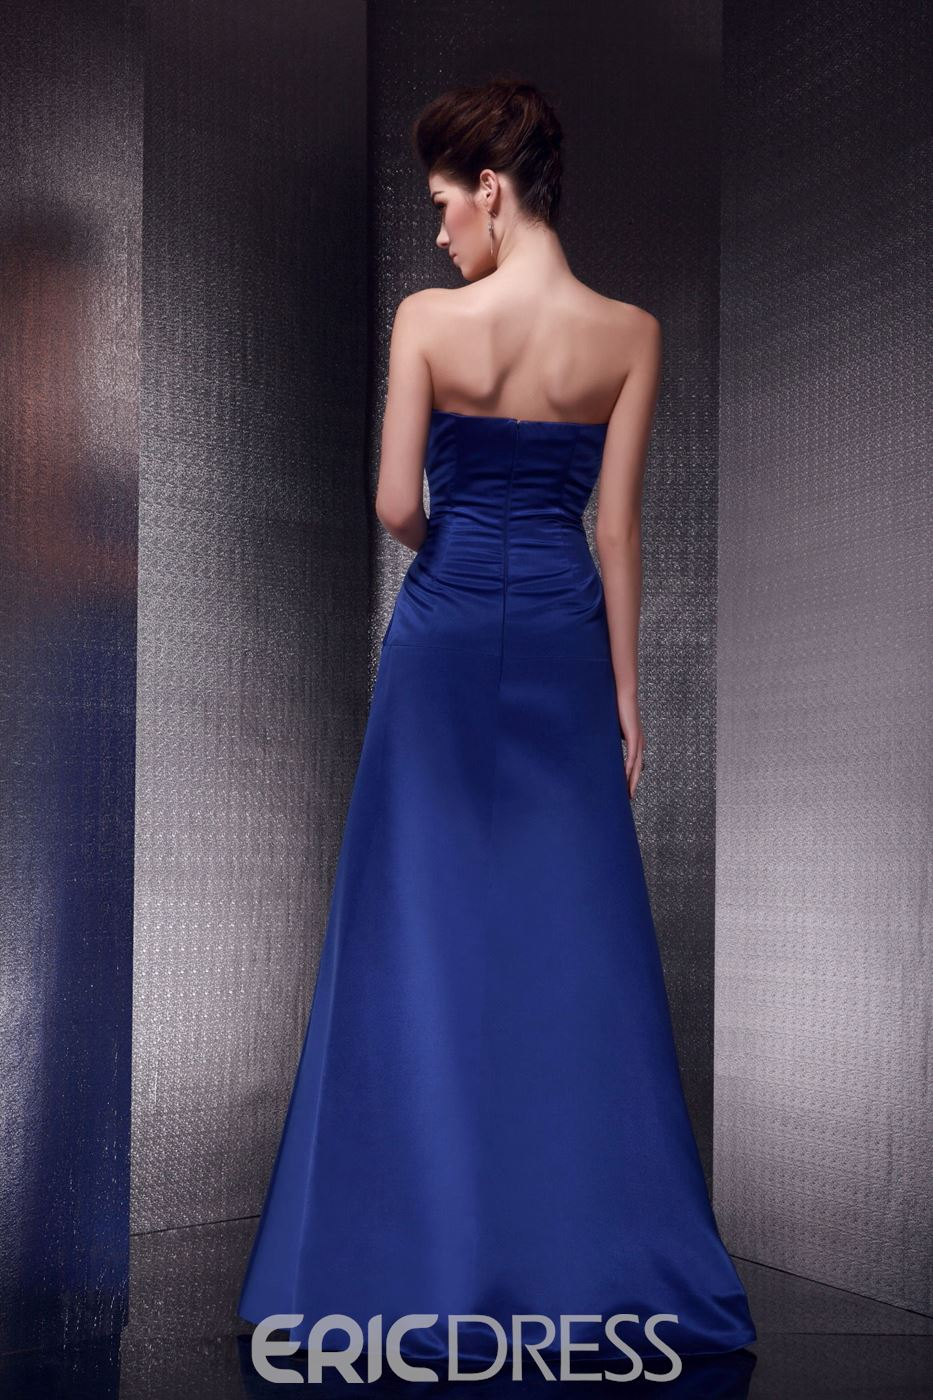 Hot Elegant A-line Strapless Sleeveless Floor-length Olga's Mother of the Bride Dress With Jacket/Shawl